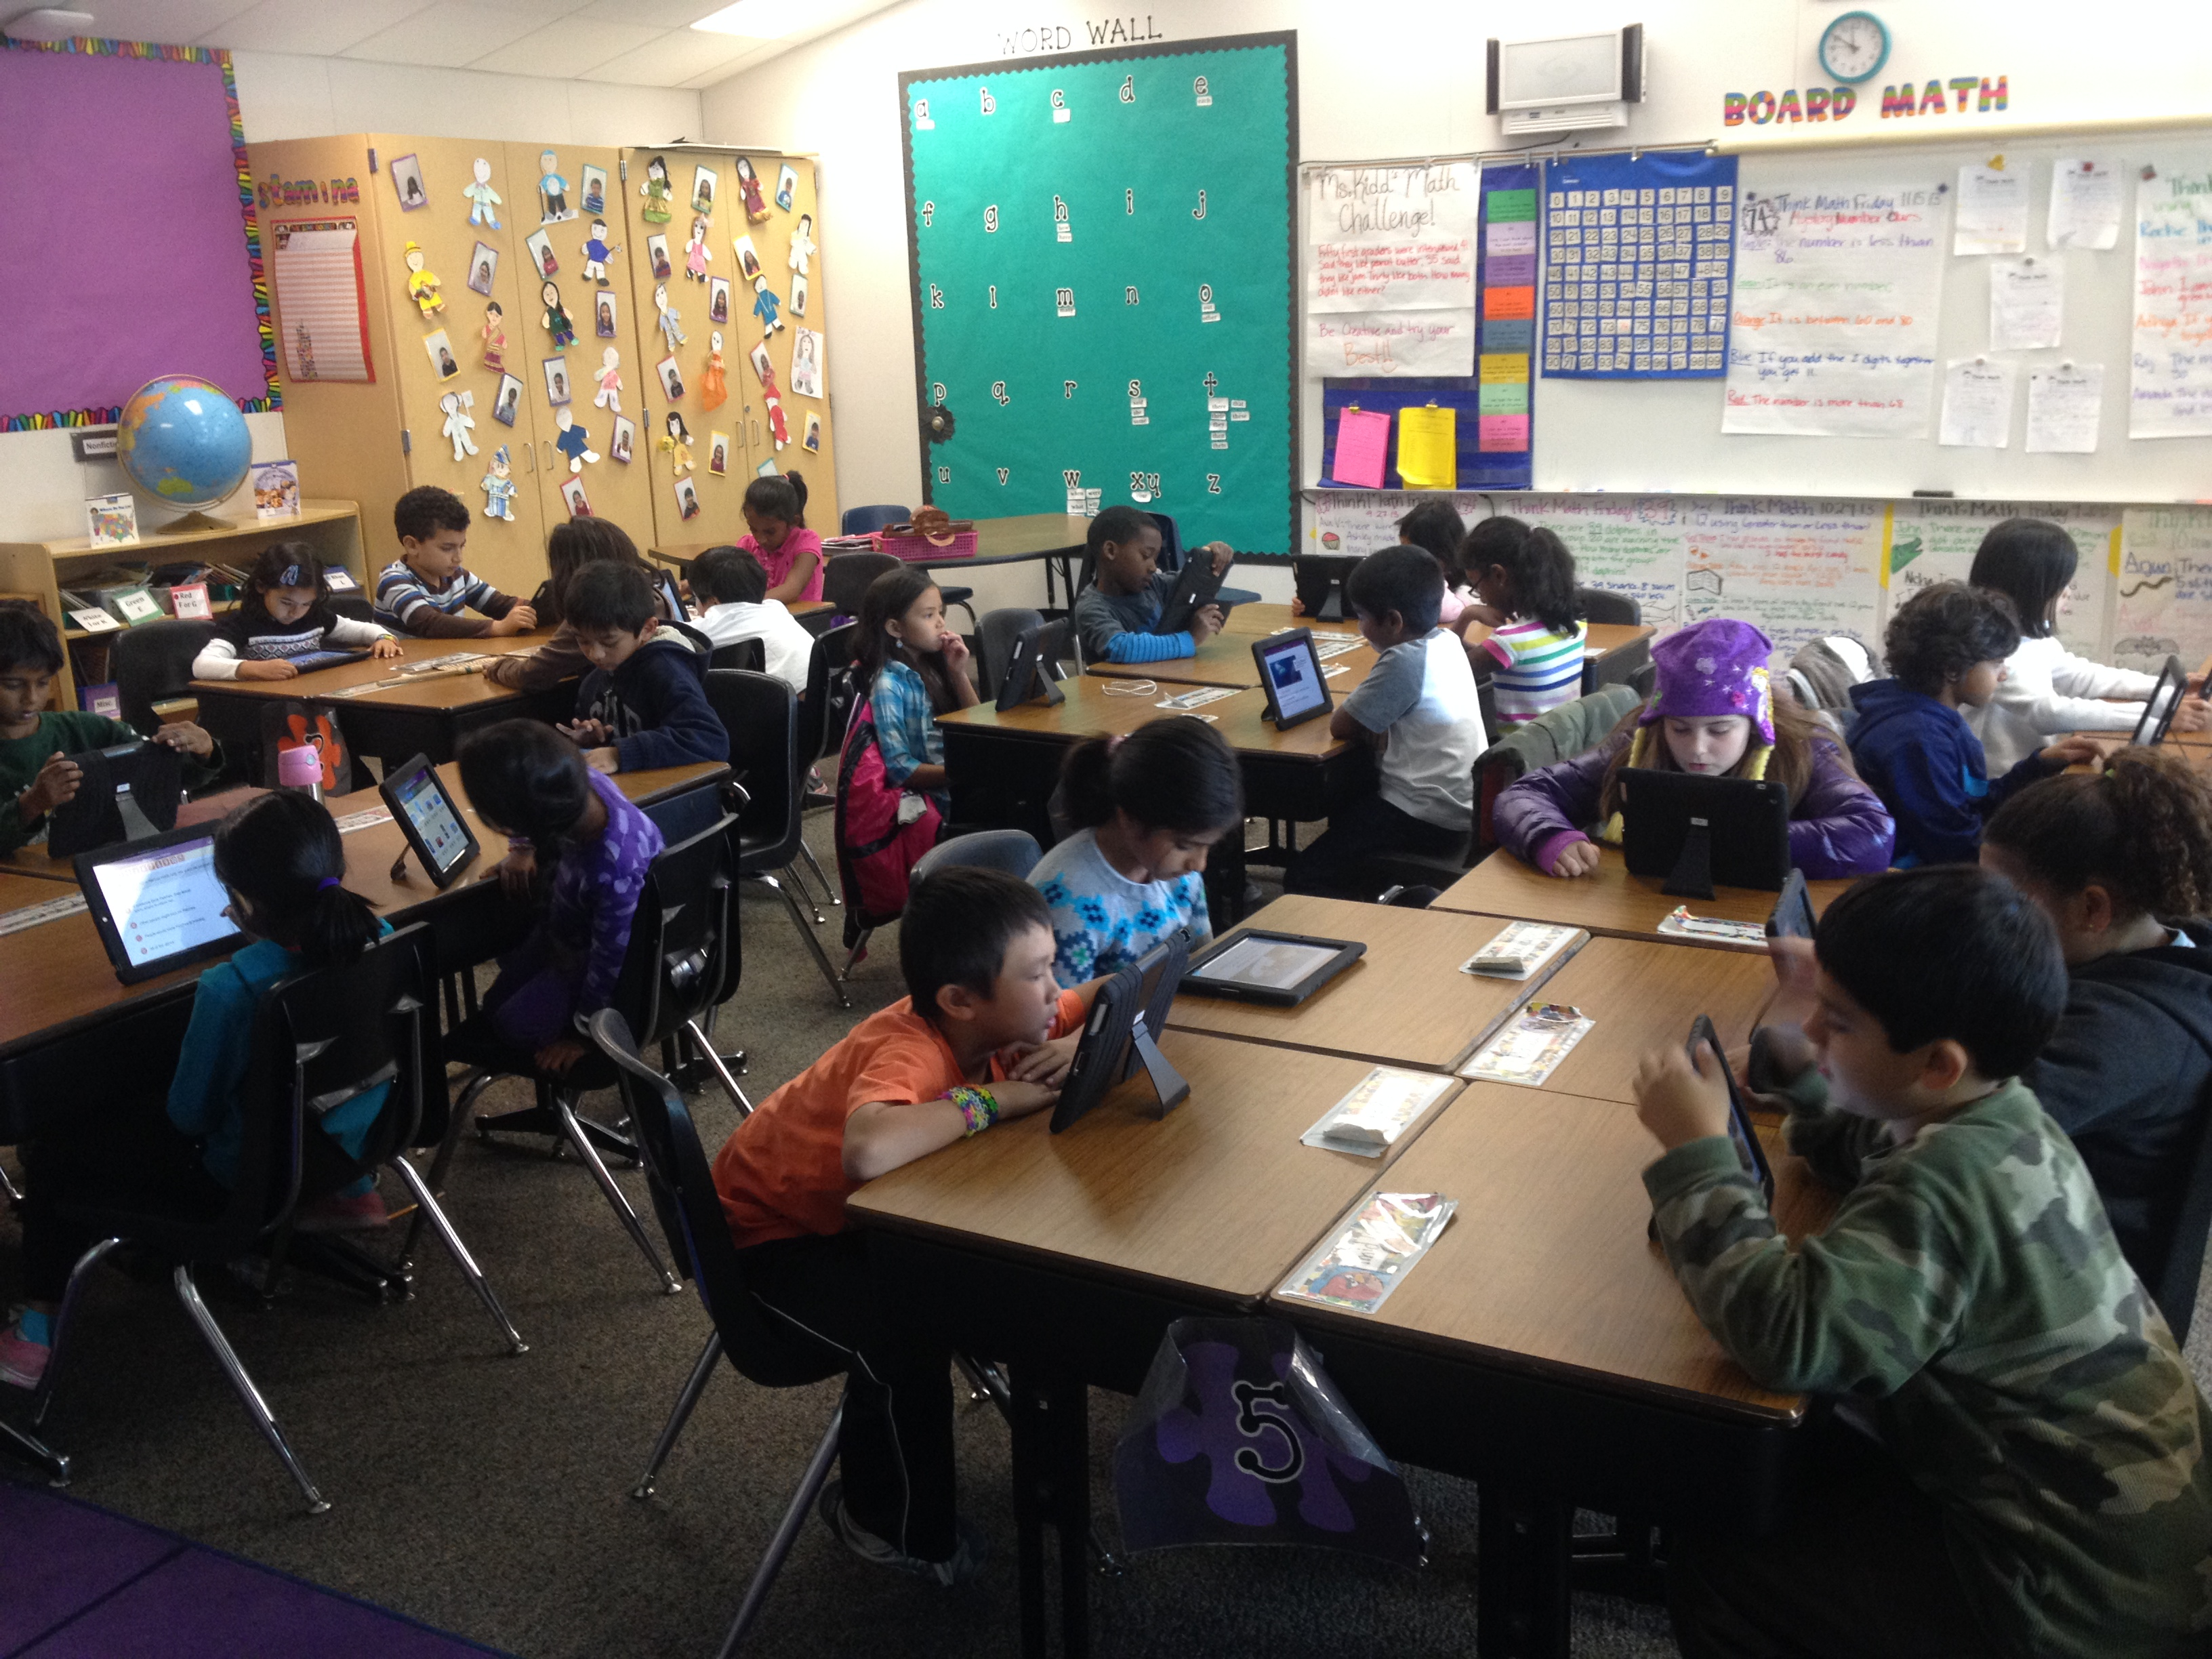 Students enjoy using the Ipads to engage in various technology based activities to supplement the 2nd grade curriculum.